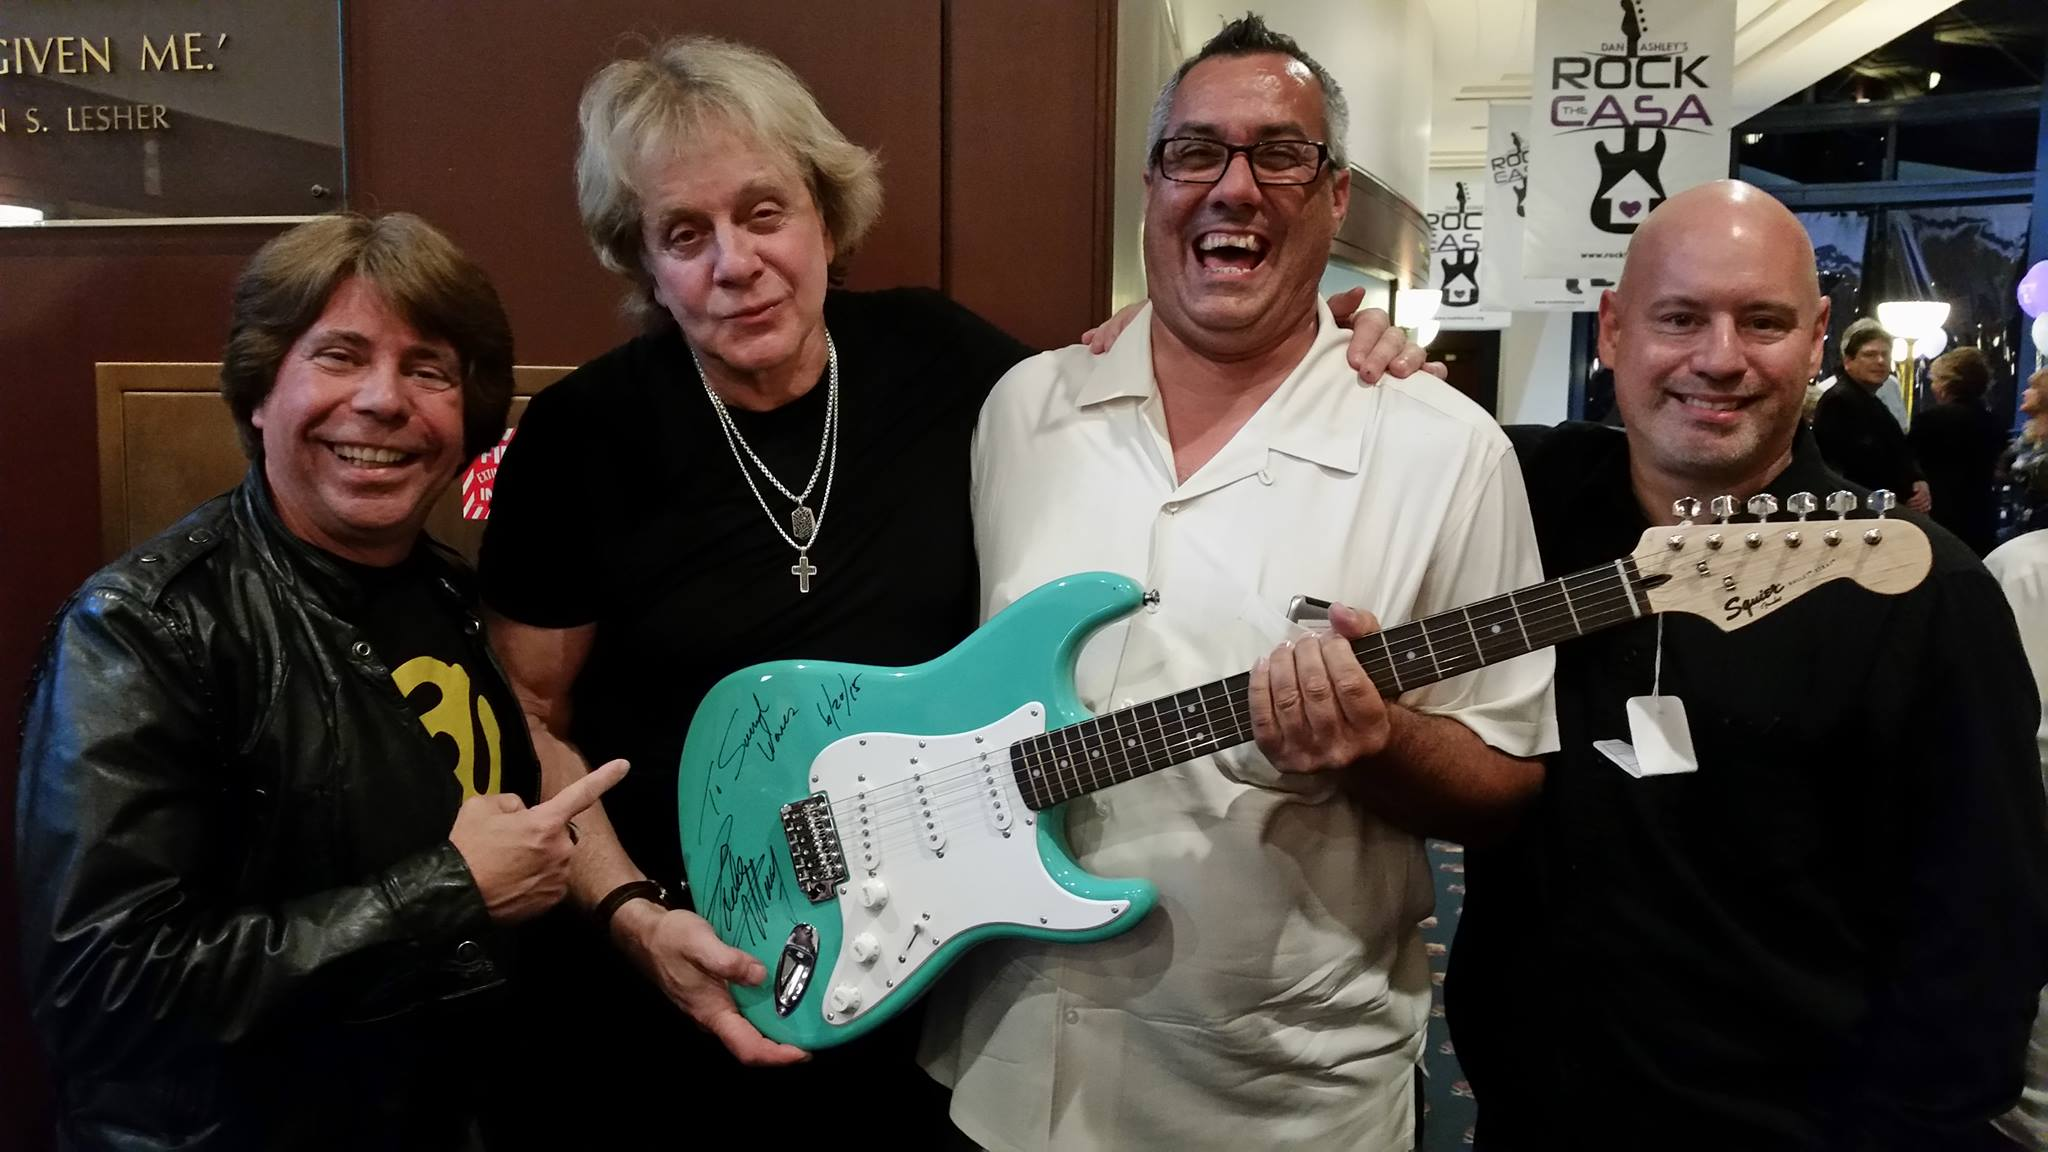 Soundwaves supports Dan Ashley's Rock the CASA event with Eddie Money